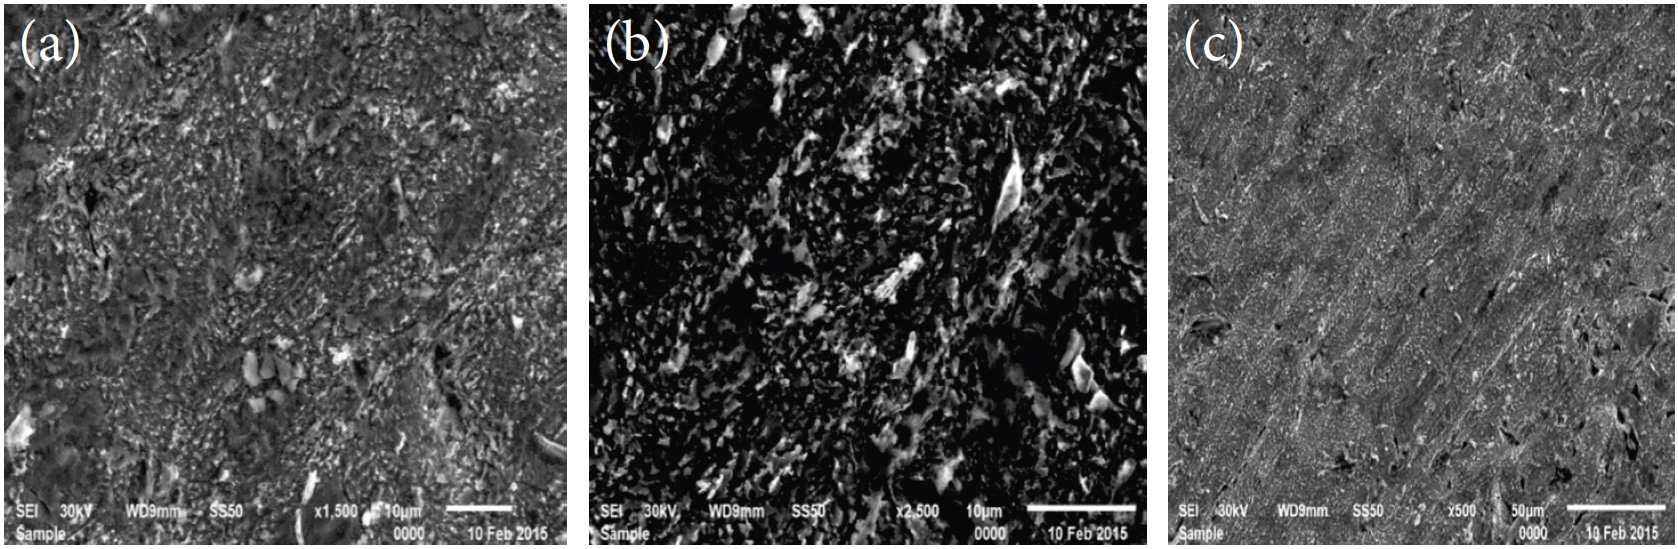 Fig. 9a-c: SEM micrographs of copper surface (a) before of immersion in 1 M HNO3, (b) after 48 h of immersion in 1 M HNO3, (c) after 48 h of immersion in 1 M HNO3+ 11x10-6 M of Rosmarinus extract at 25°C